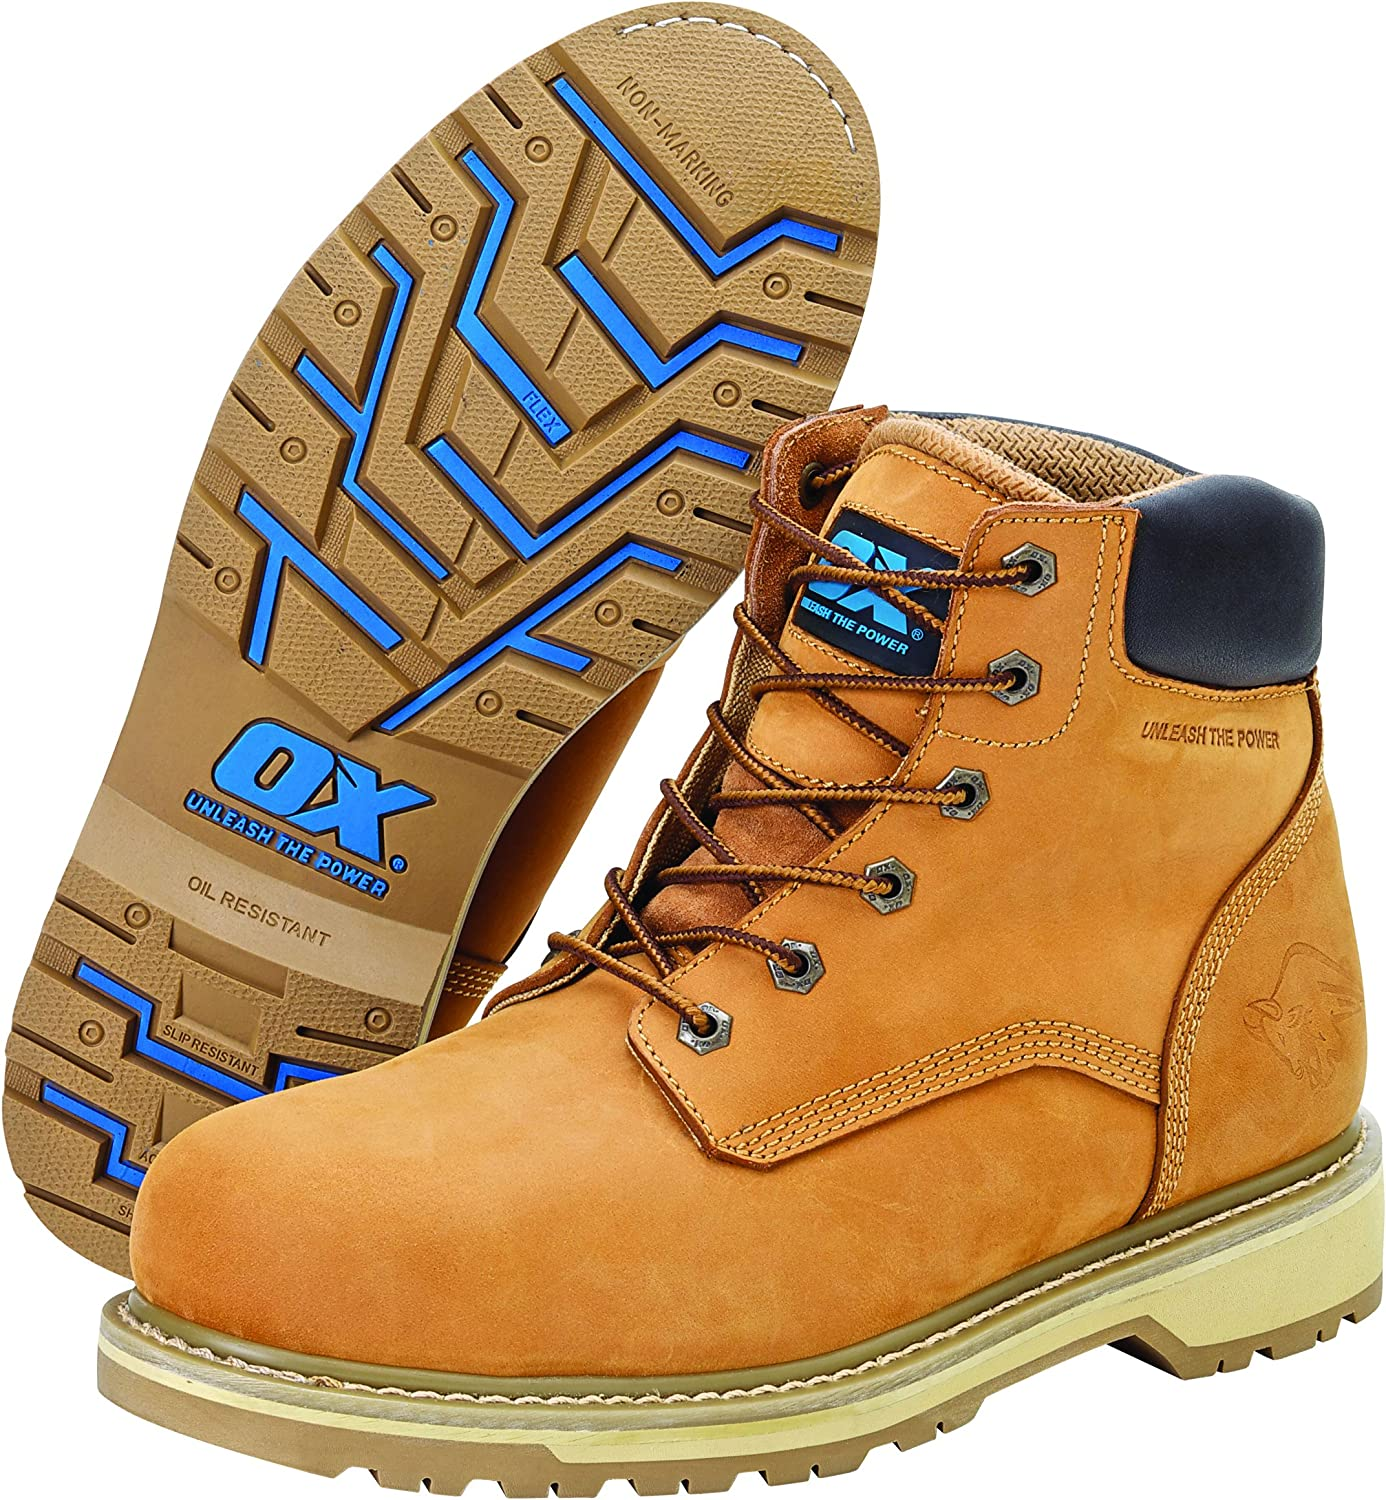 OX Safety Boots - Industrial Grade Pro Series Safety Boots with Steel Toe Cap - Tan - Size 10